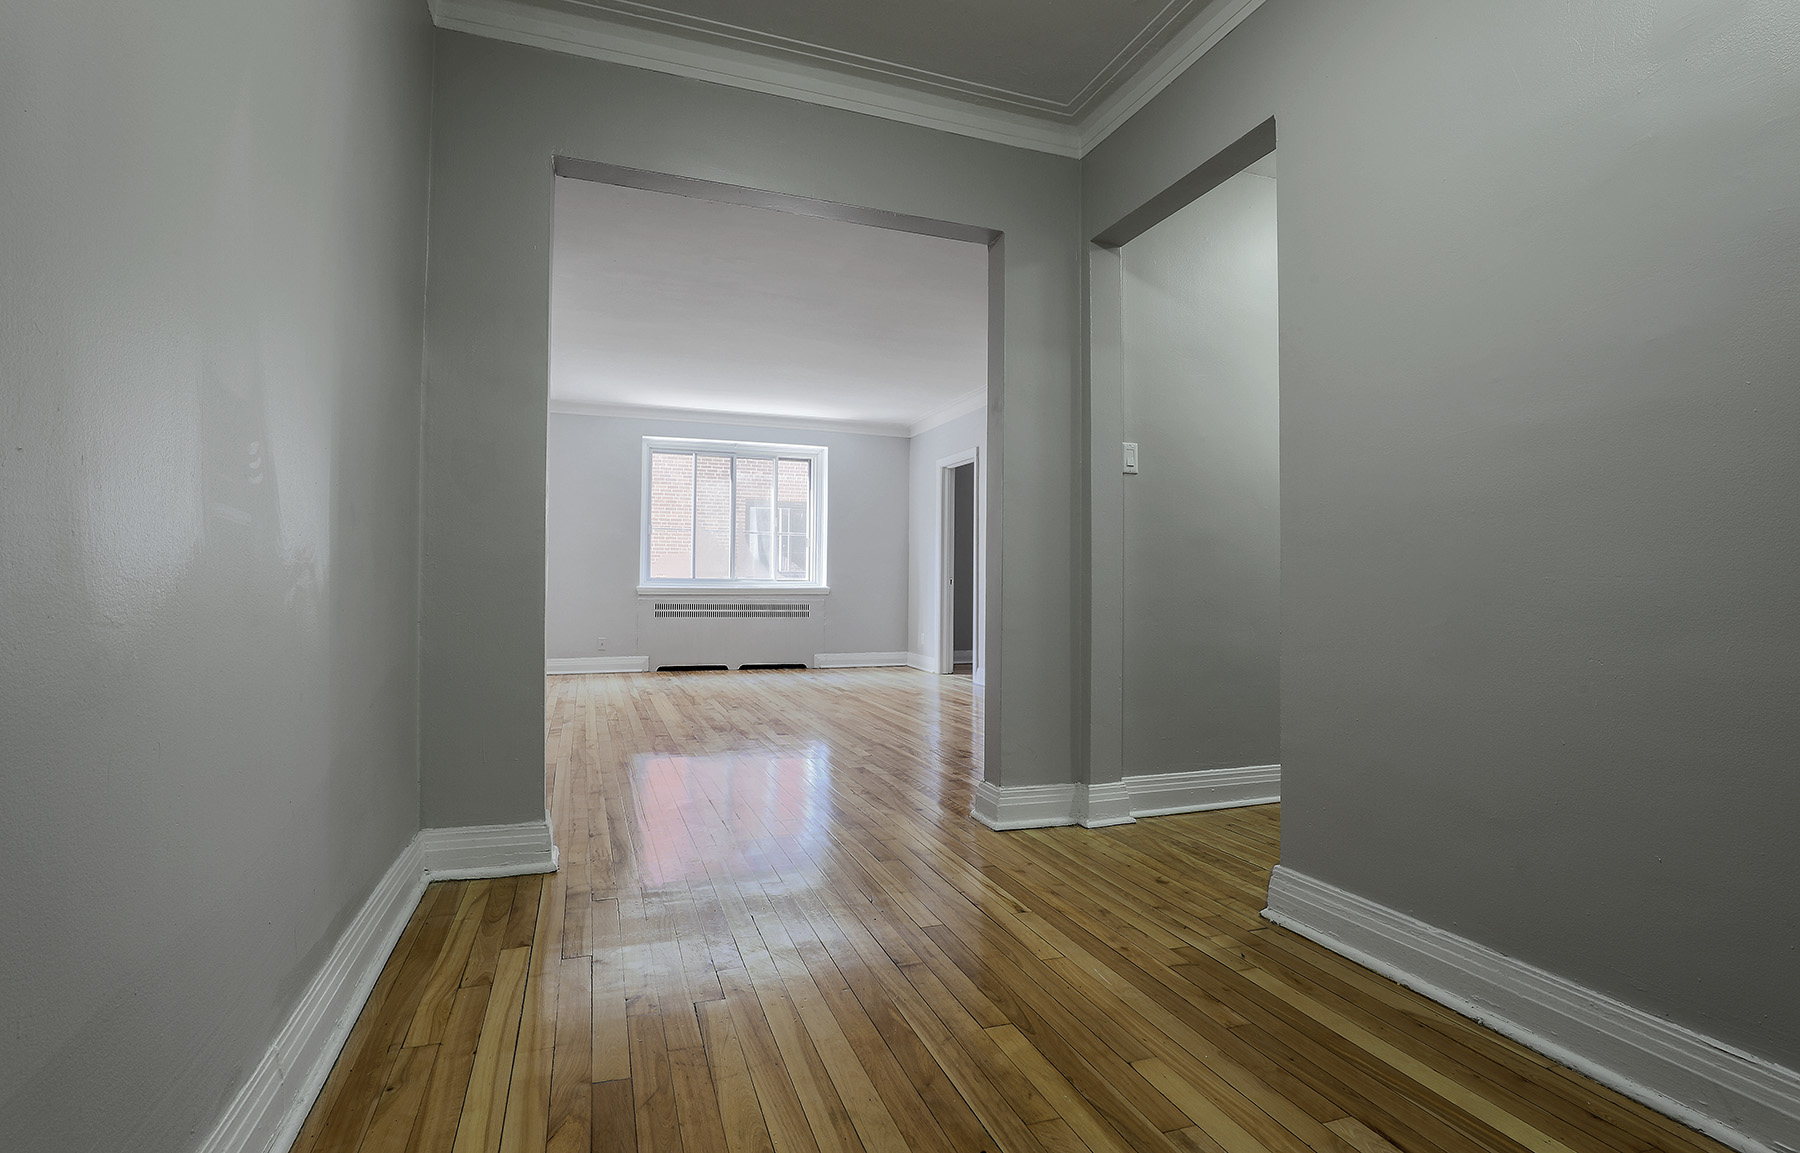 3 bedroom Apartments for rent in Cote-des-Neiges at 5000 Clanranald - Photo 09 - RentQuebecApartments – L401549